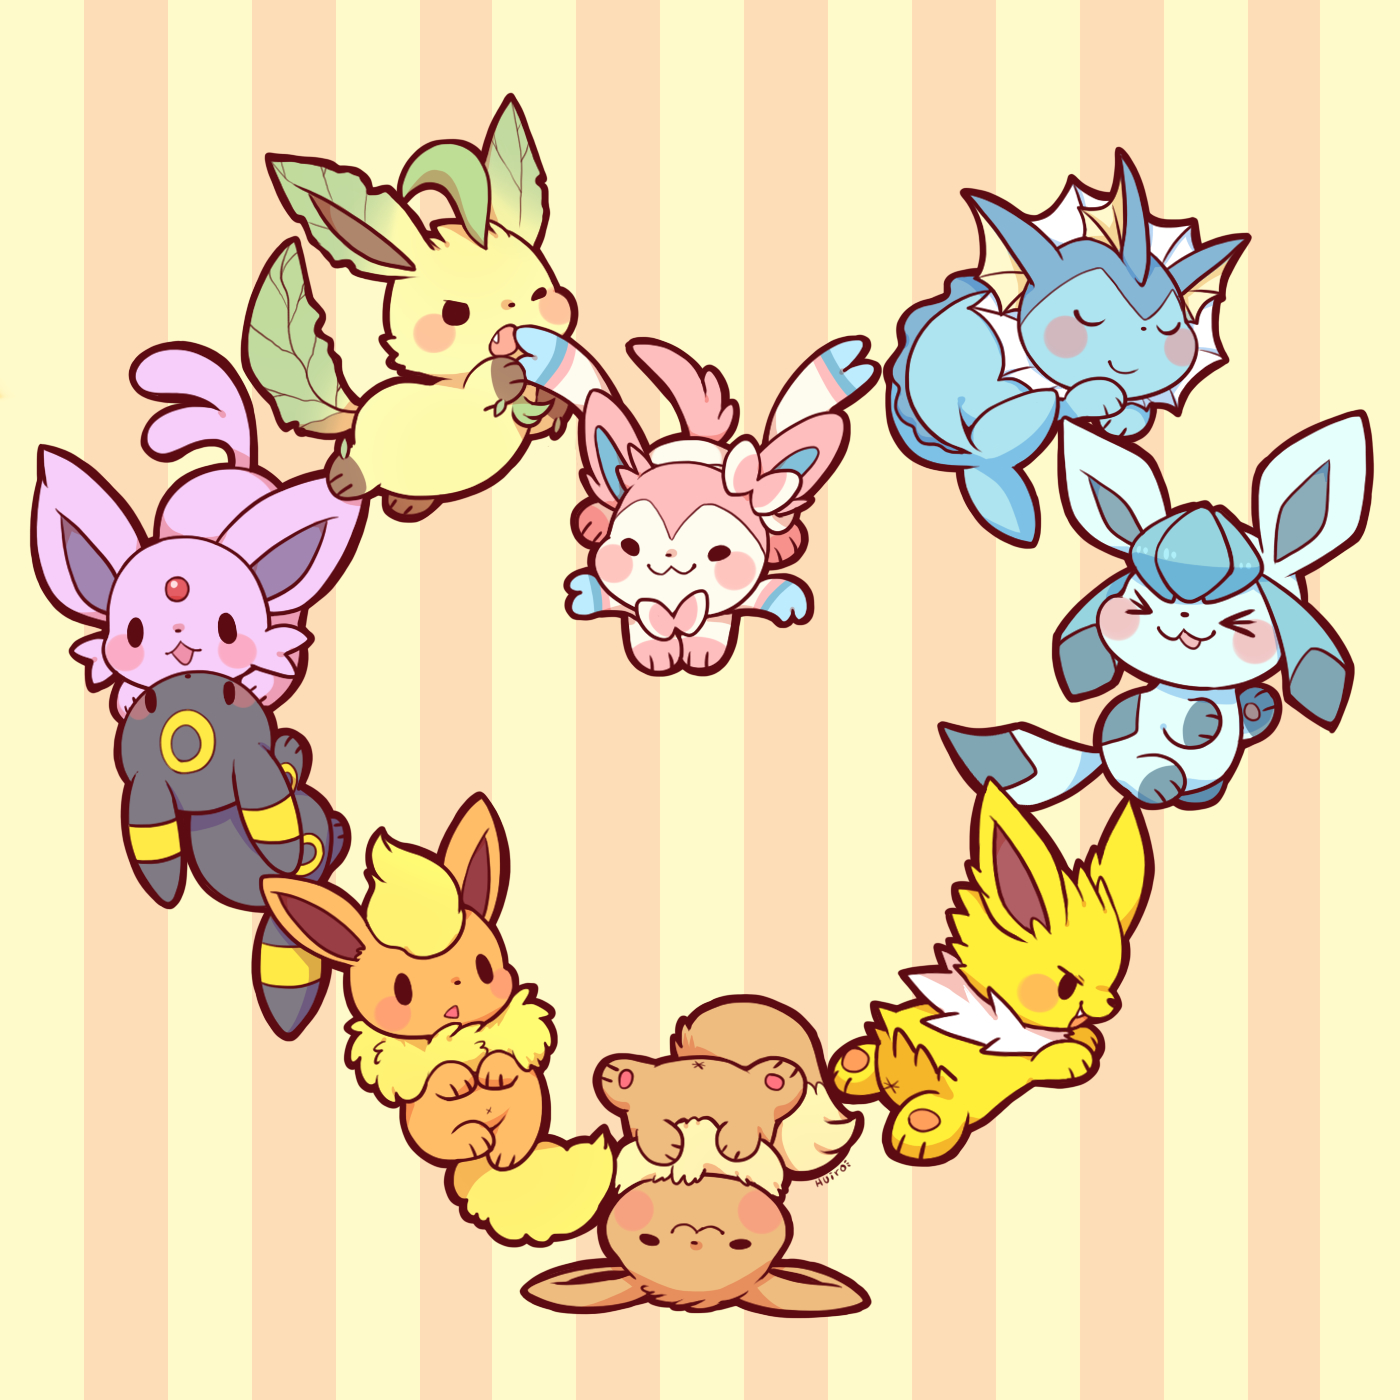 Eeveelution Pokémon